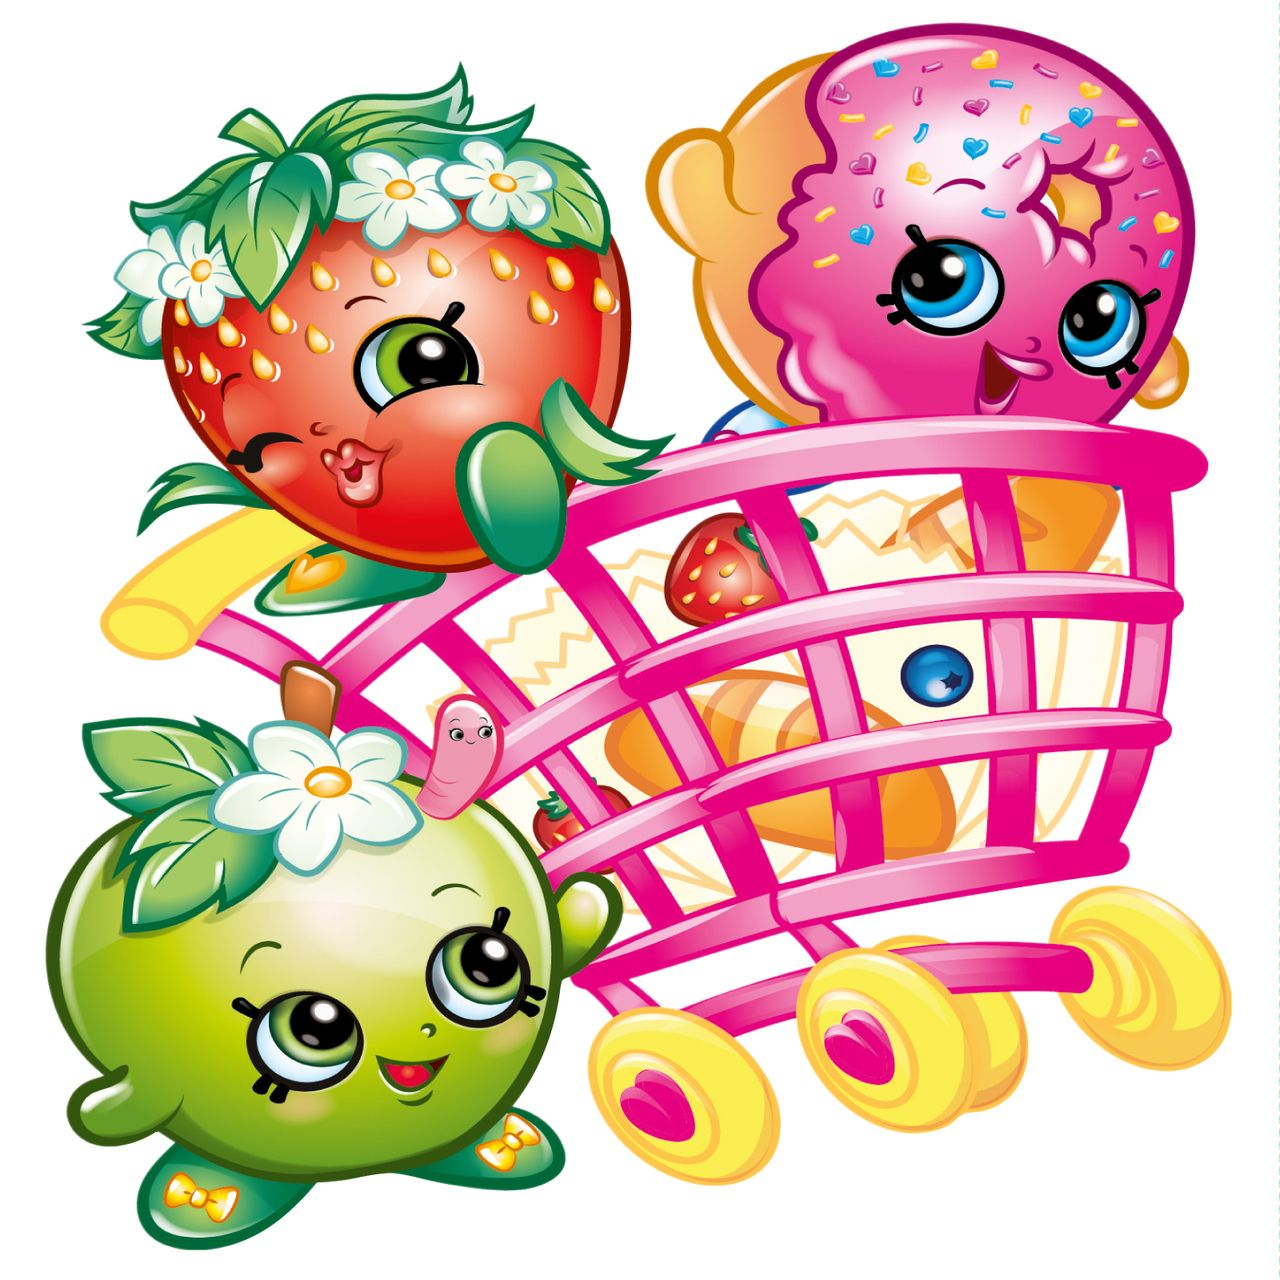 shopkins wall stickers totally movable and reusable shopkins shopkins wall stickers totally movable and reusable